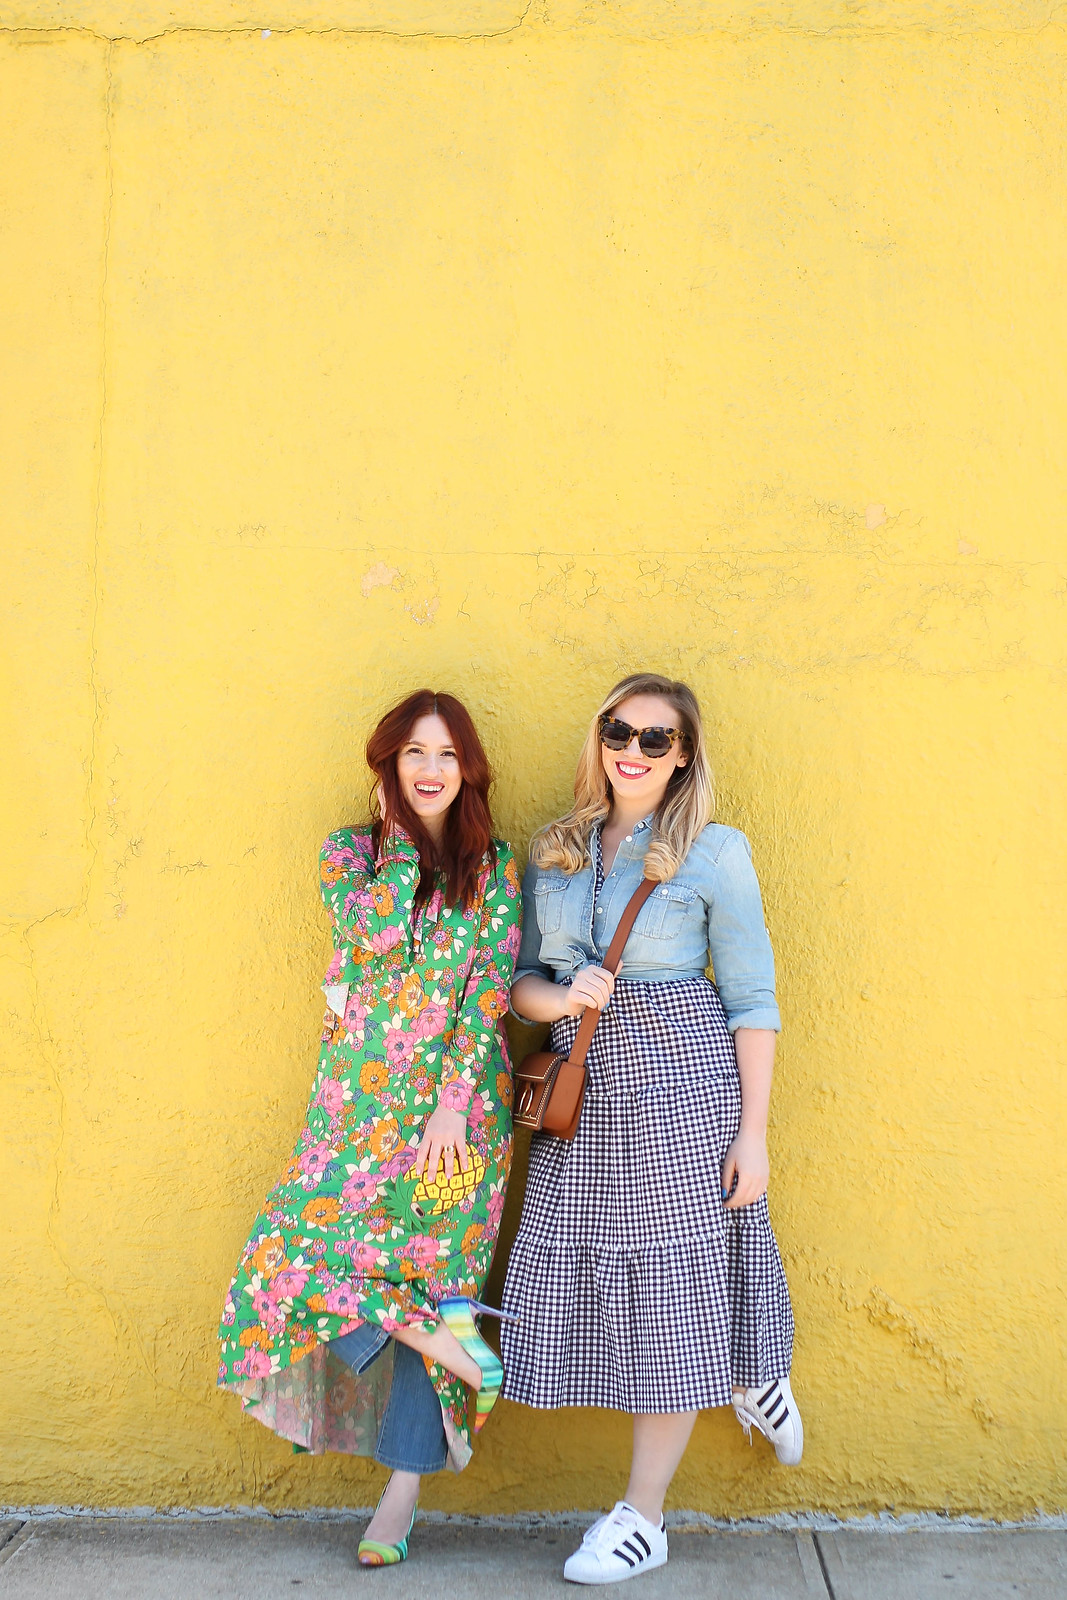 Fun Spring Layered Outfit New York City Fashion Bloggers Floral Dress Gingham Dress Yellow Wall